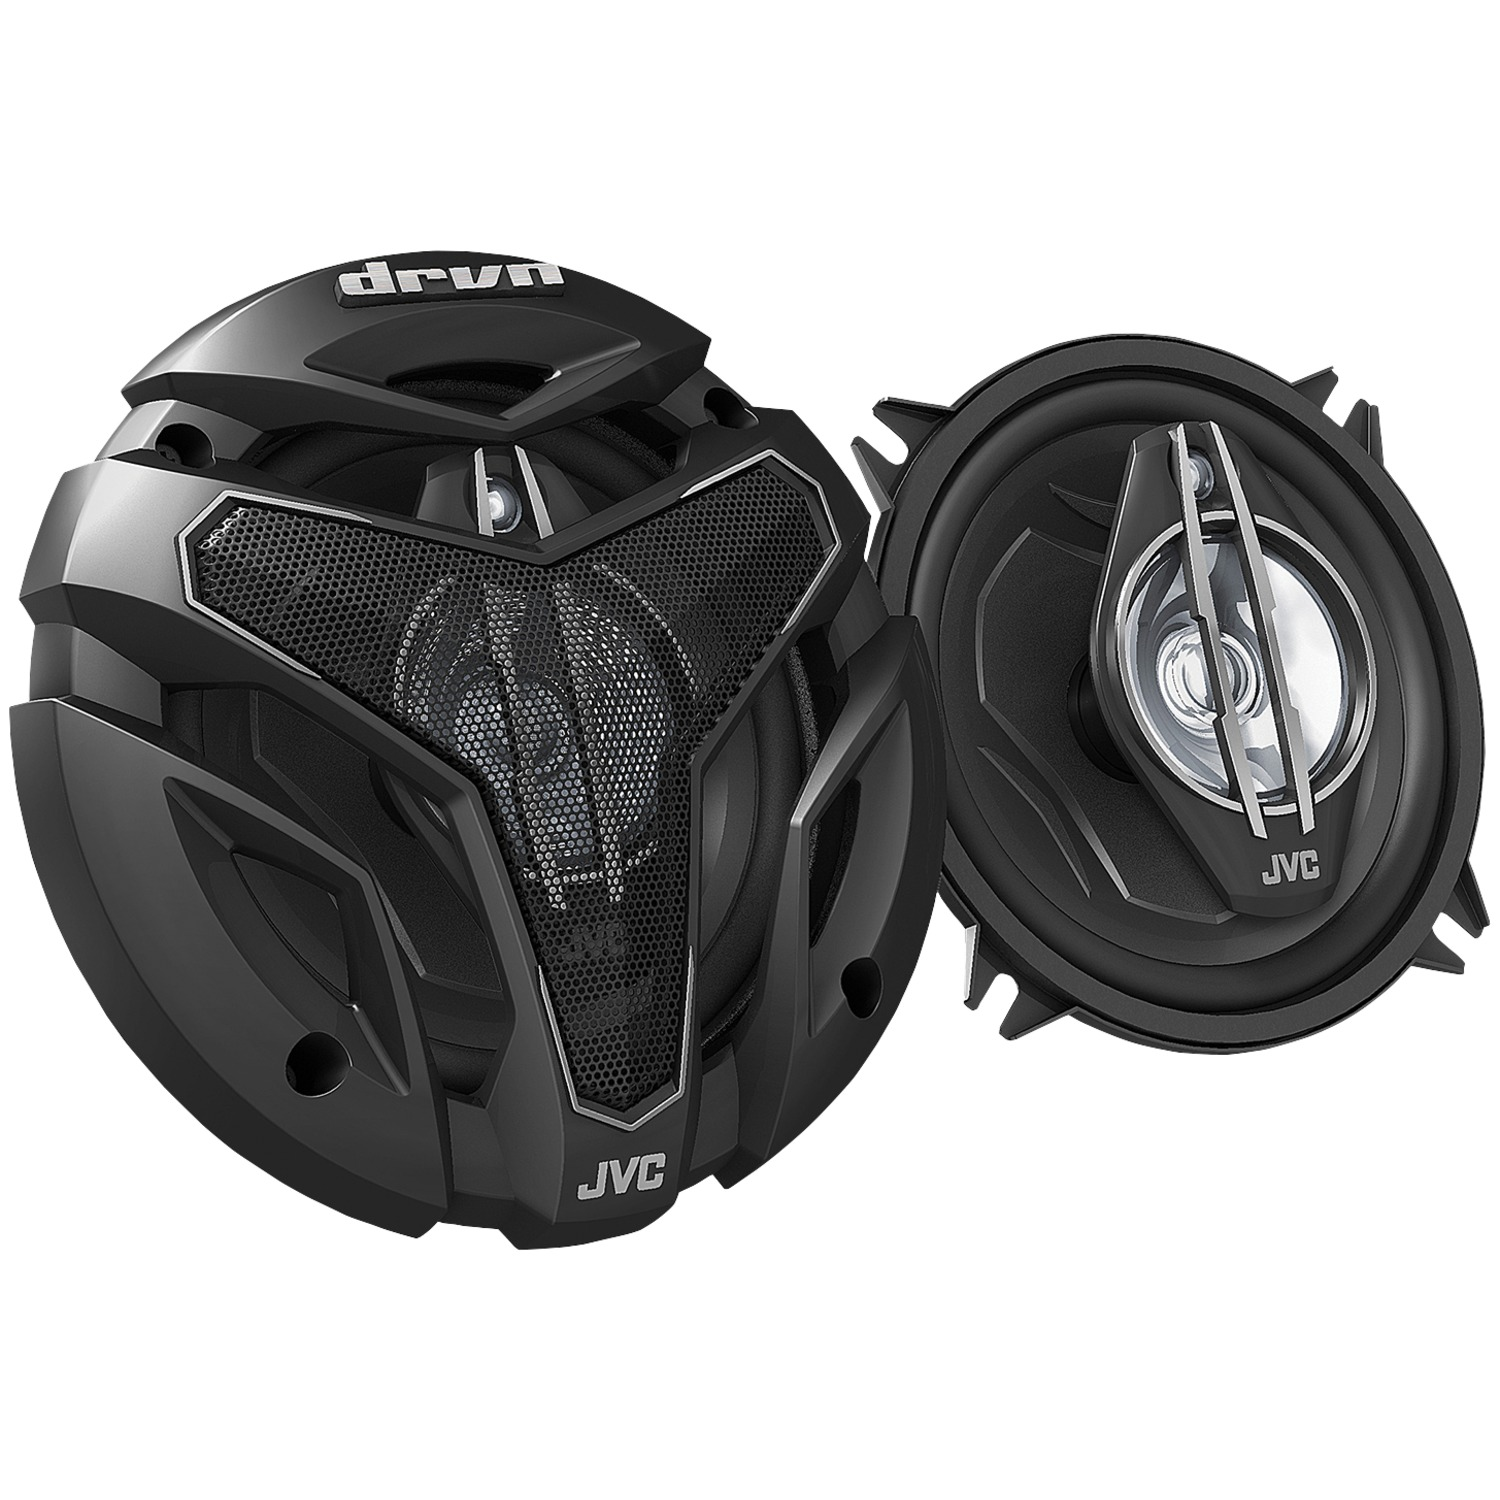 "JVC Mobile CS-ZX530 DRVN ZX Series Coaxial Speakers (5.25"", 3 Way)"